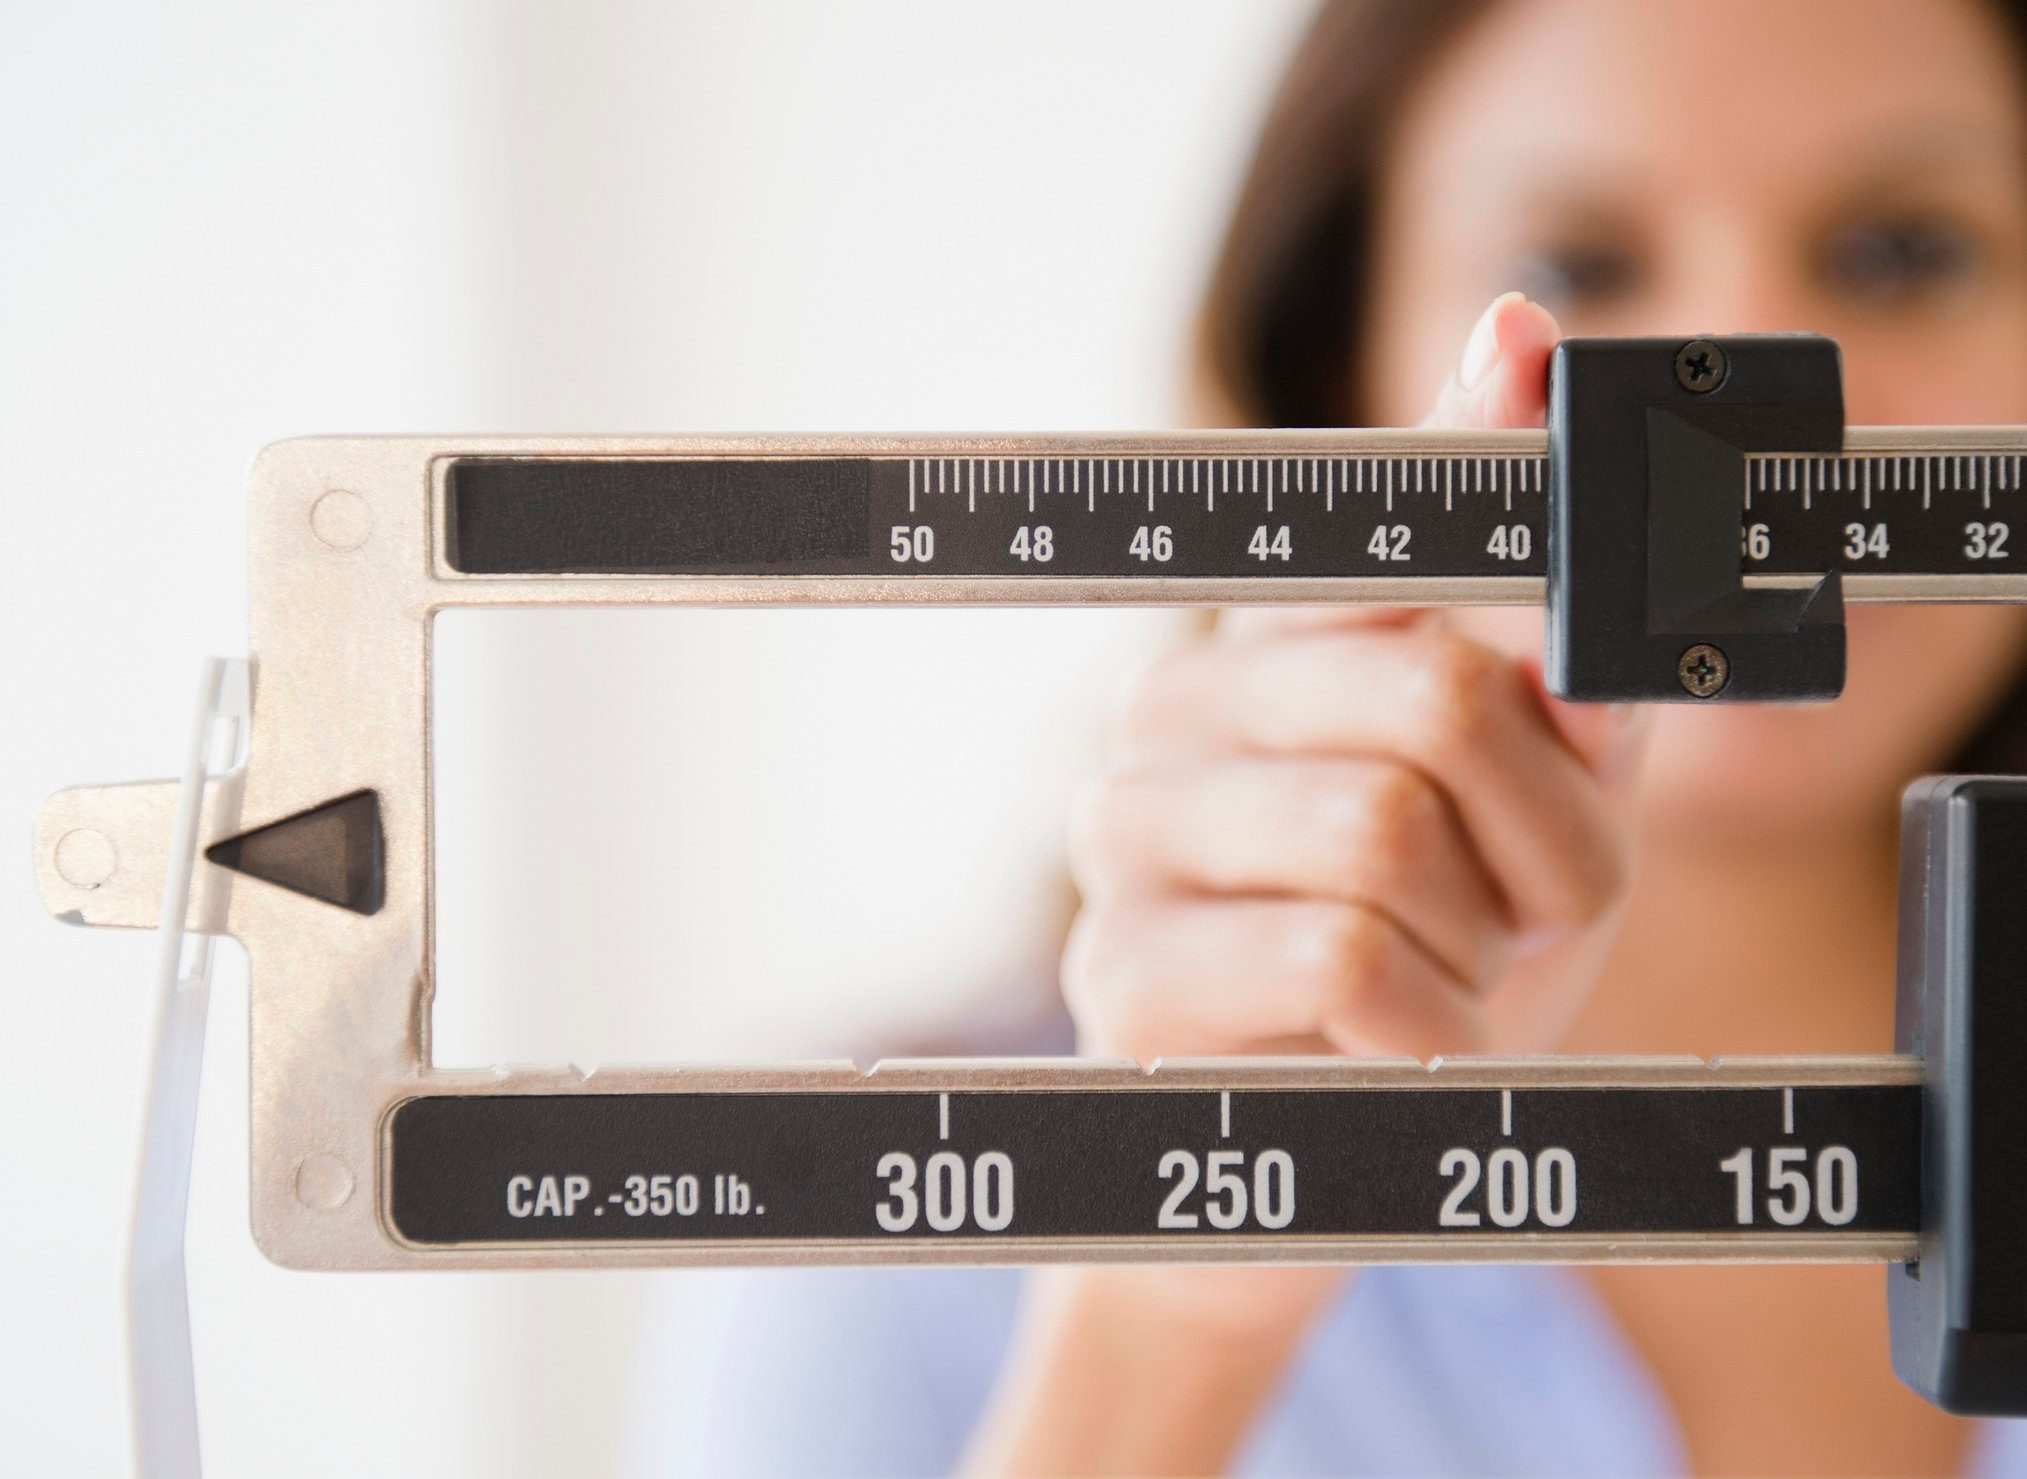 weight scale close up shot